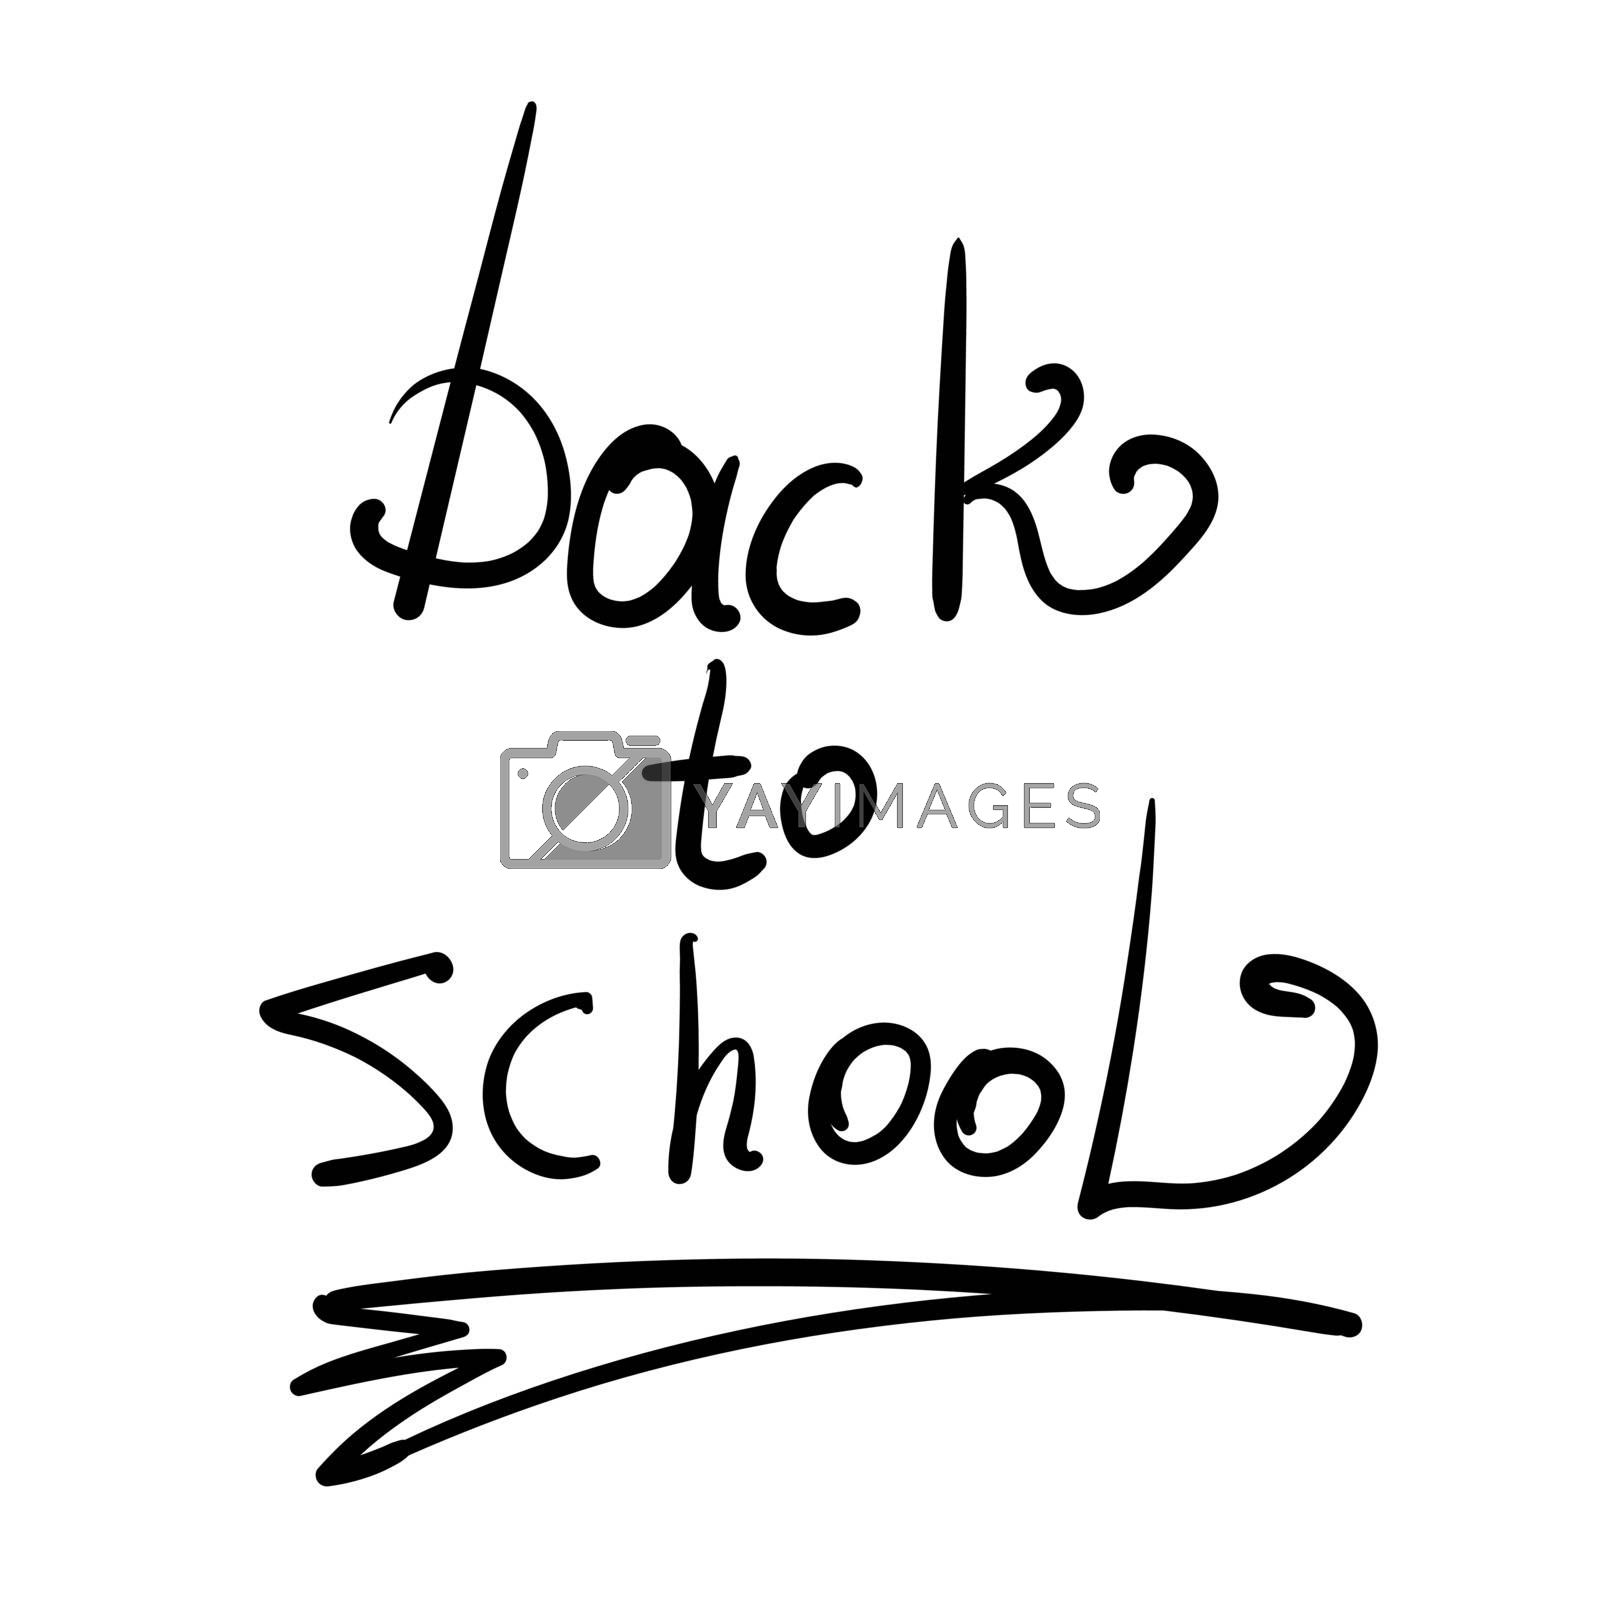 Hand-Drawn Back to School Sketchy Notebook Doodles with Lettering, Books, Shooting Stars, Hearts, and Swirls- Vector Illustration Design Elements on Lined Sketchbook Paper Background.